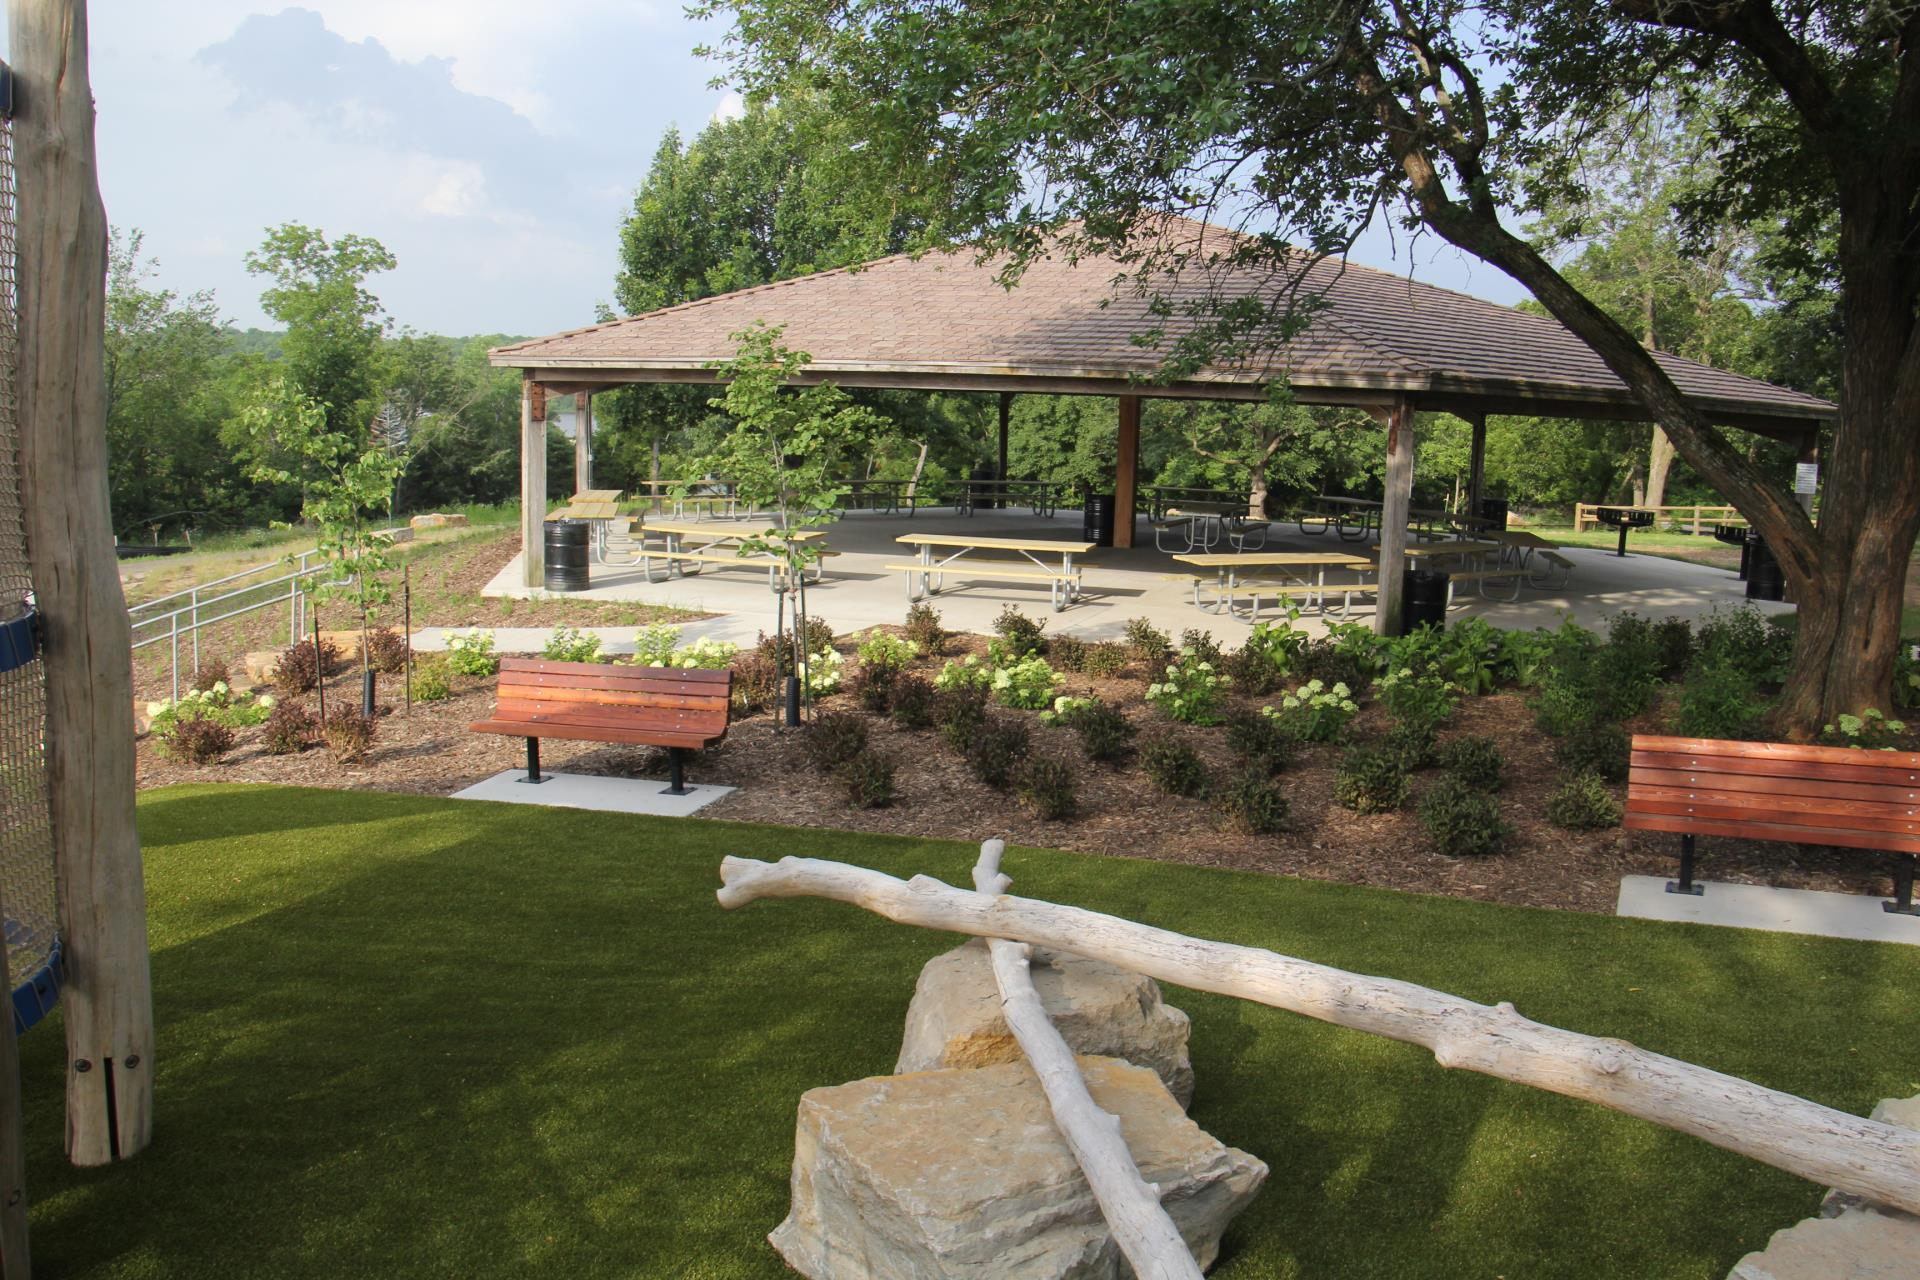 A view of the landscaping surrounding Beaver Shelter at Lake Olathe